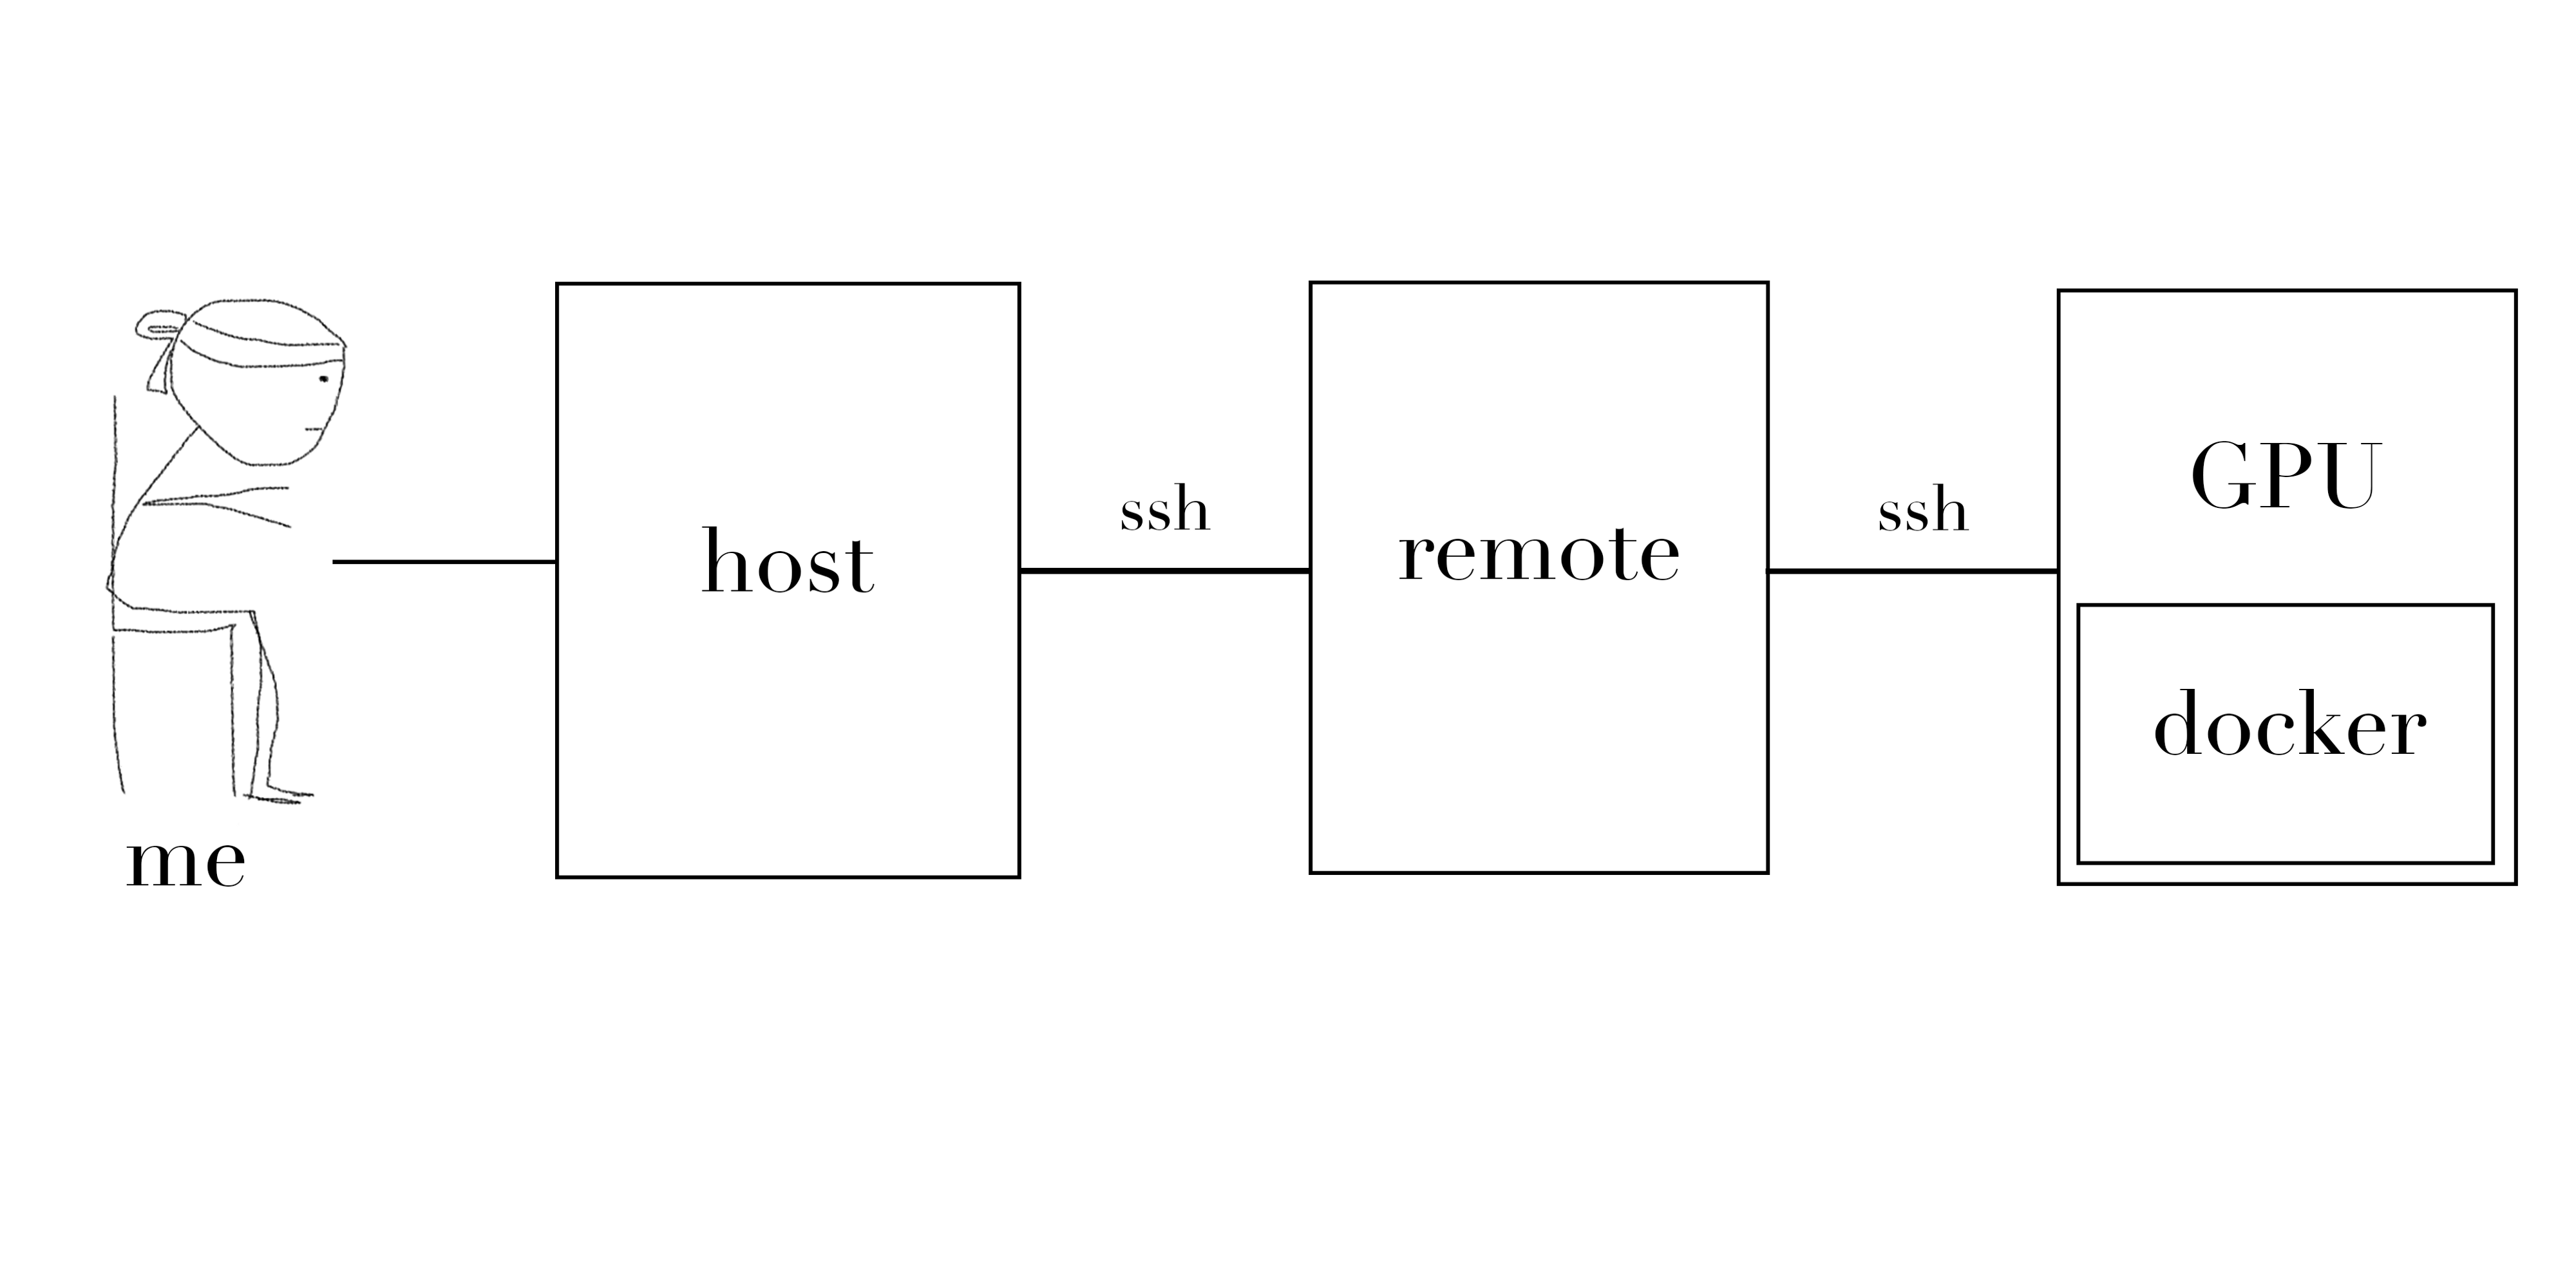 Running Jupyter on a remote docker container via SSH